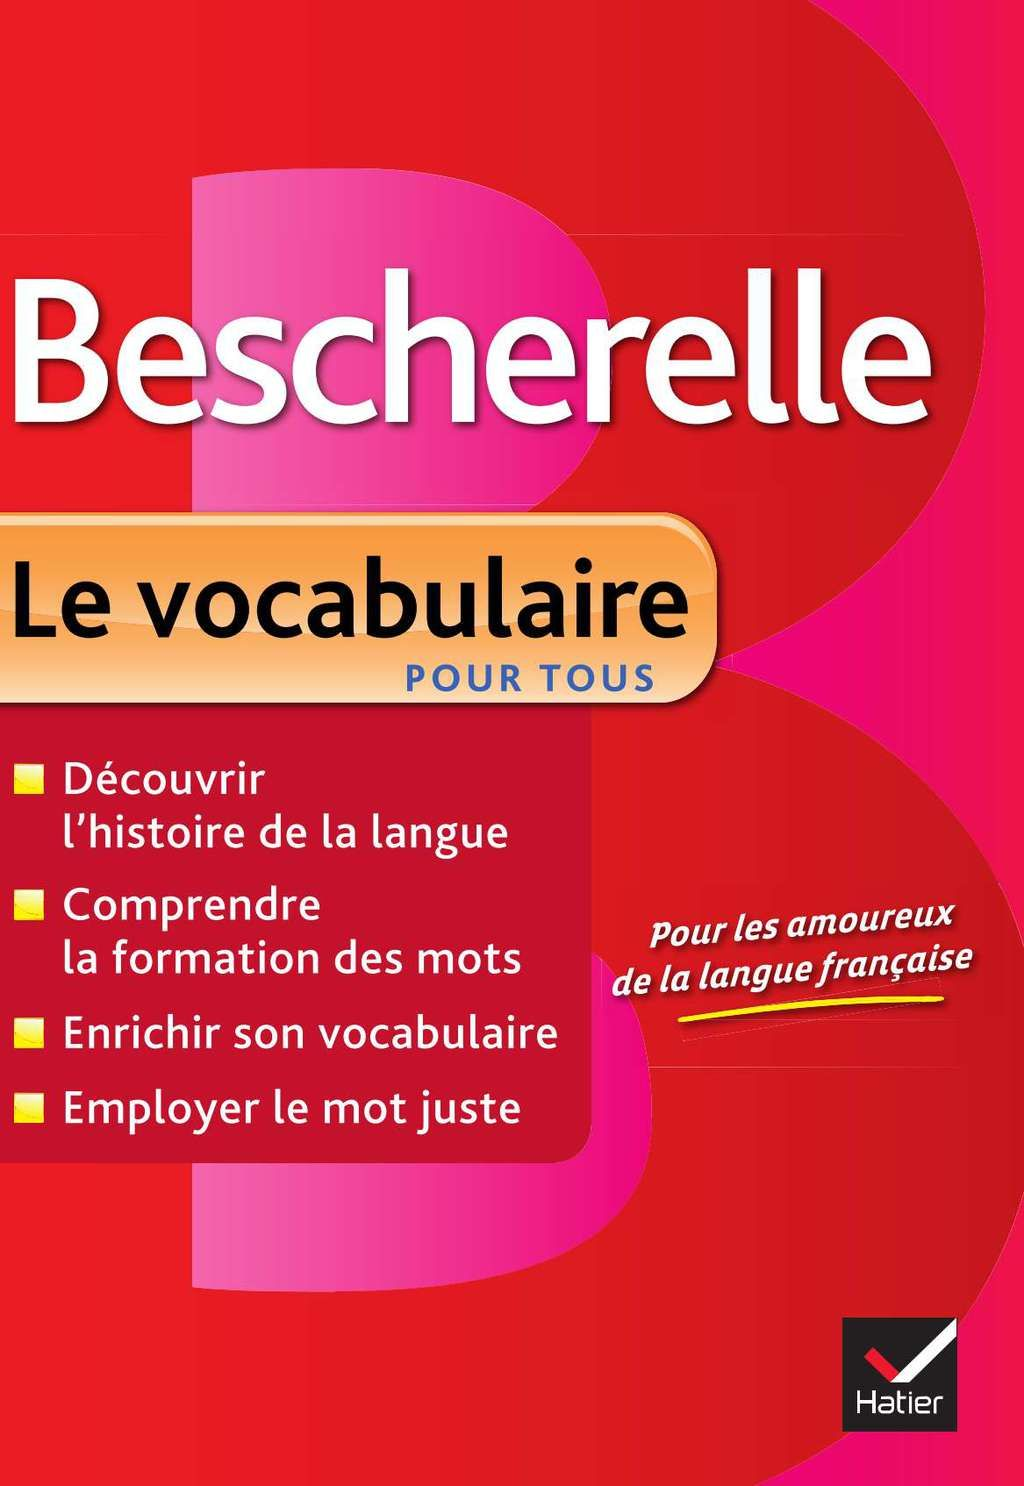 learn french language free ebook